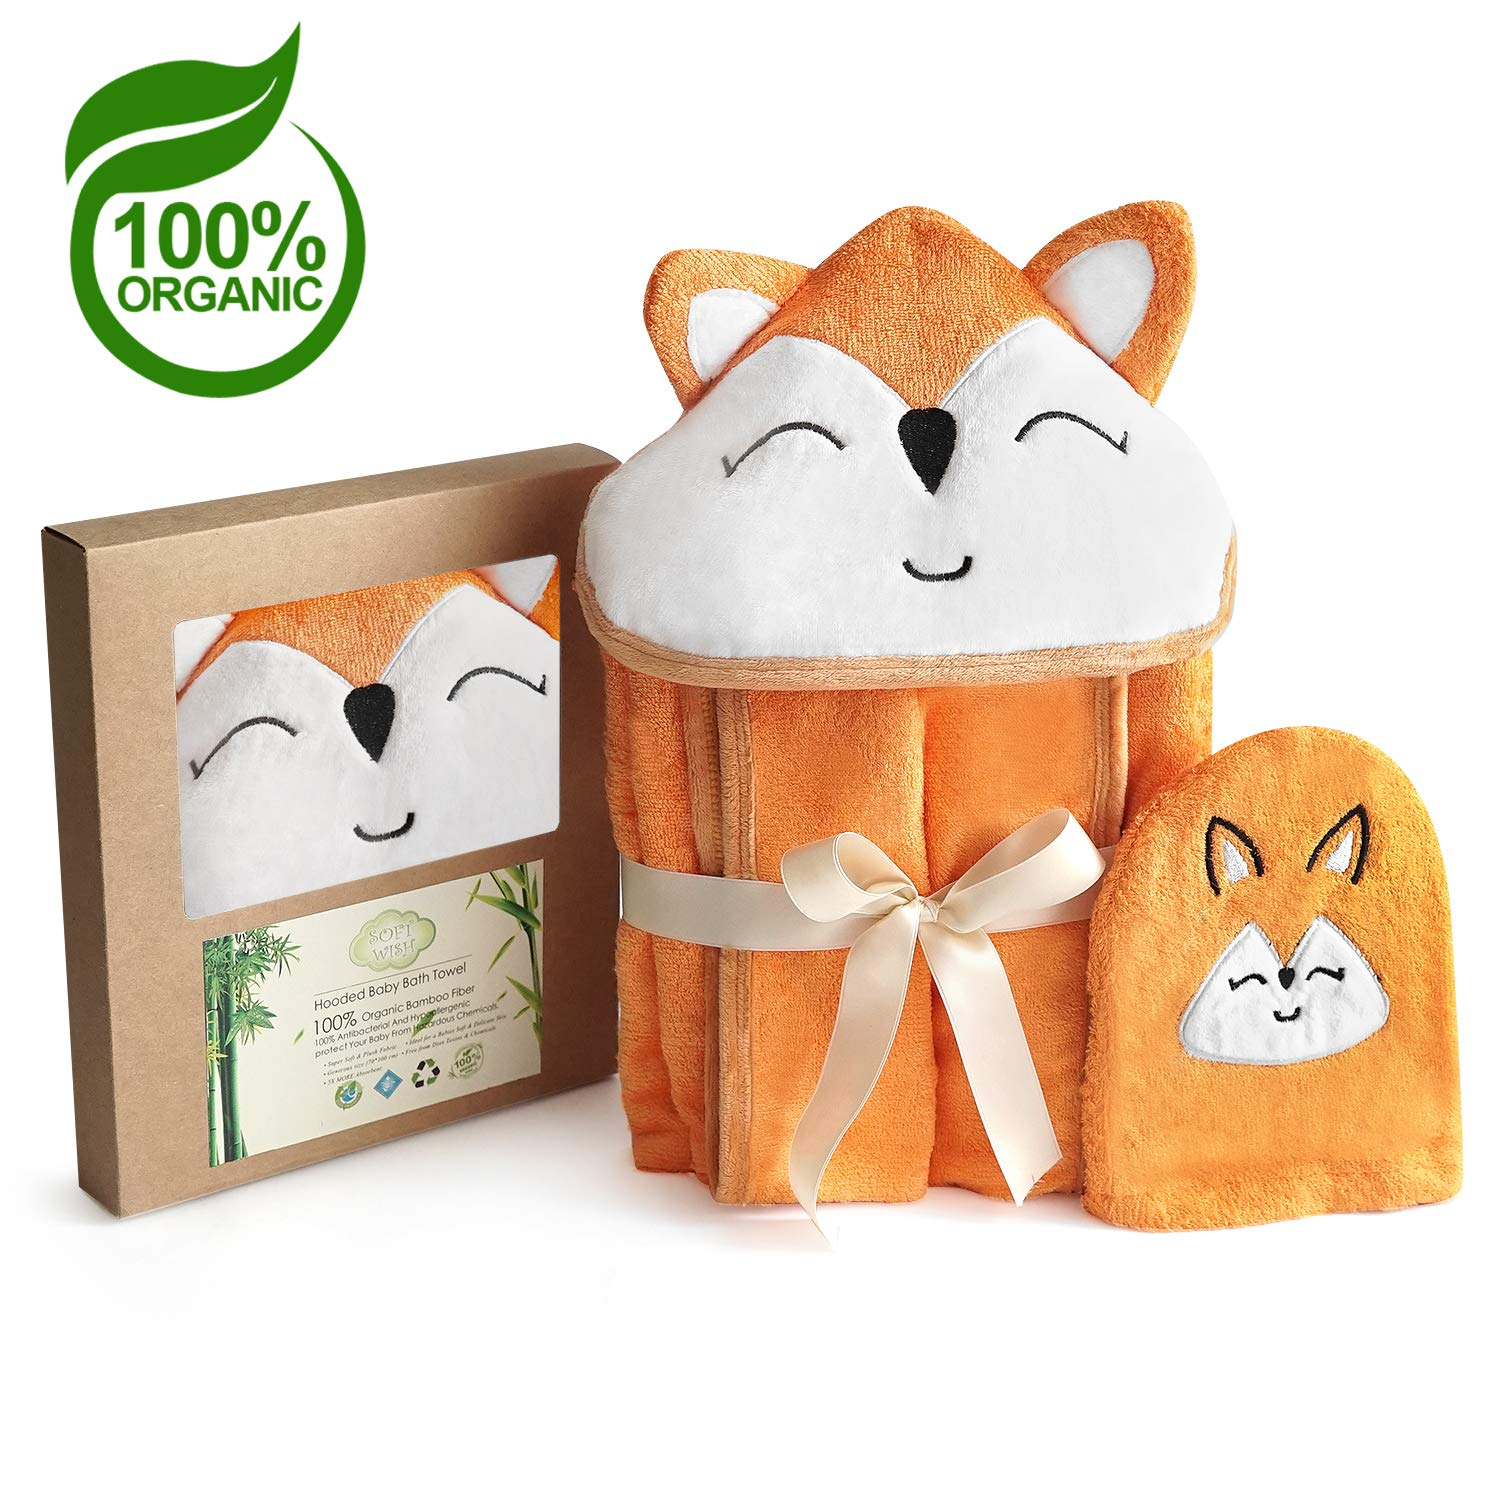 Fox Style Bamboo Baby Hooded Bath Towel & Washing Glove Set - Size 40x28'', Hypoallergenic, Ultra Absorbent, 100% Natural by Soft Wish